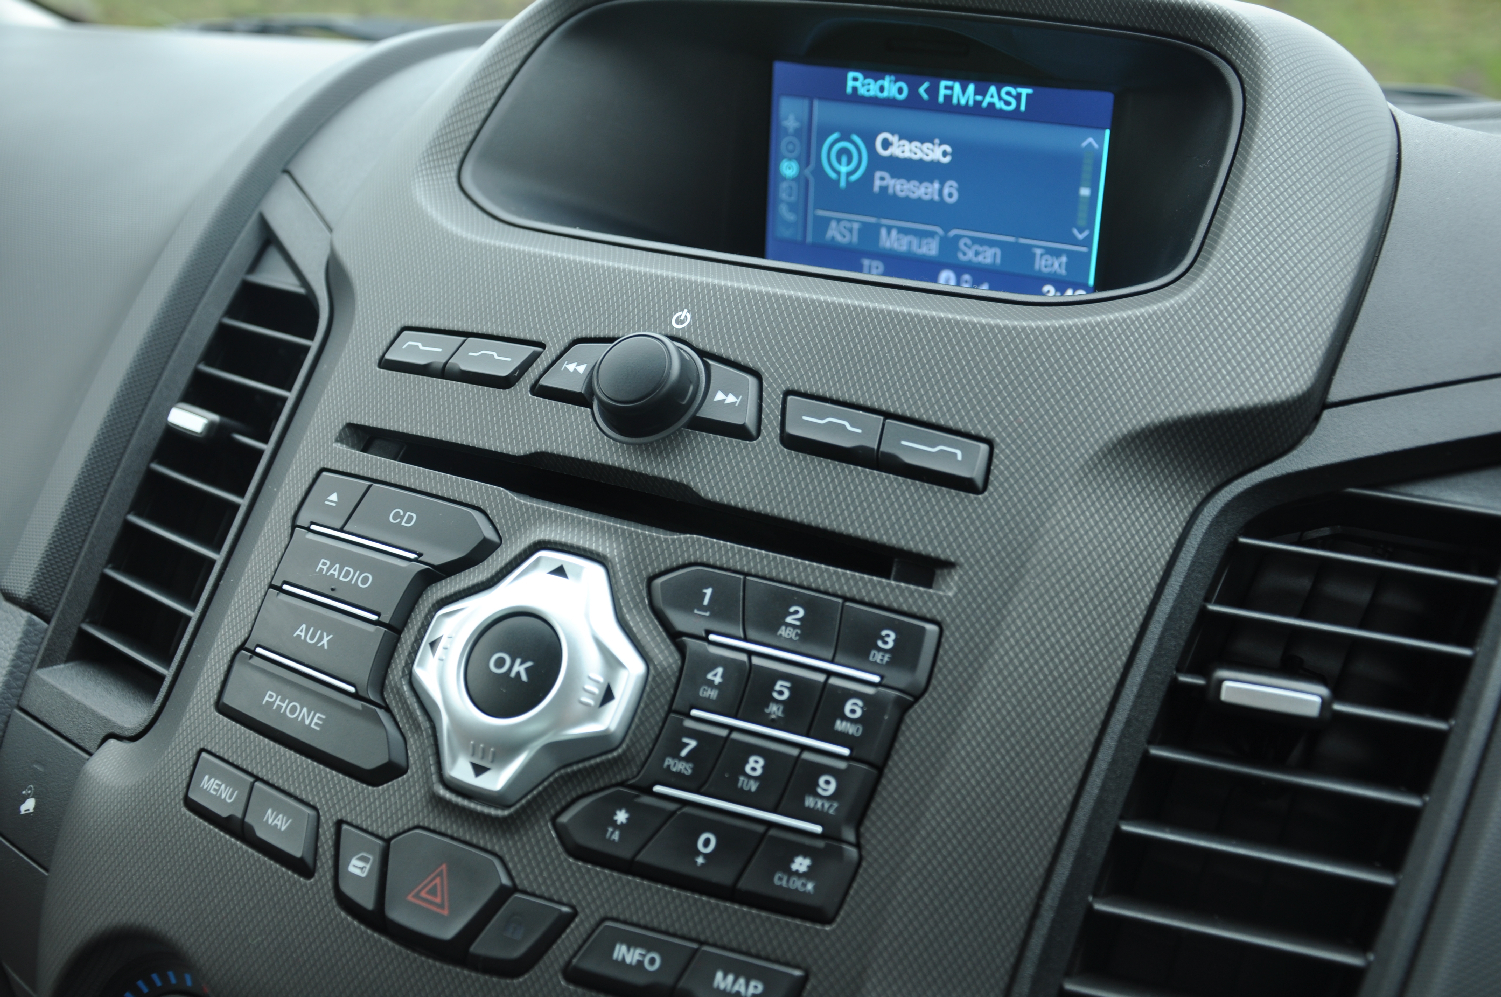 2012 Ford Ranger Wildtrak 3-2 diesel automatic road test review by Oliver Hammond photo - audio Bluetooth